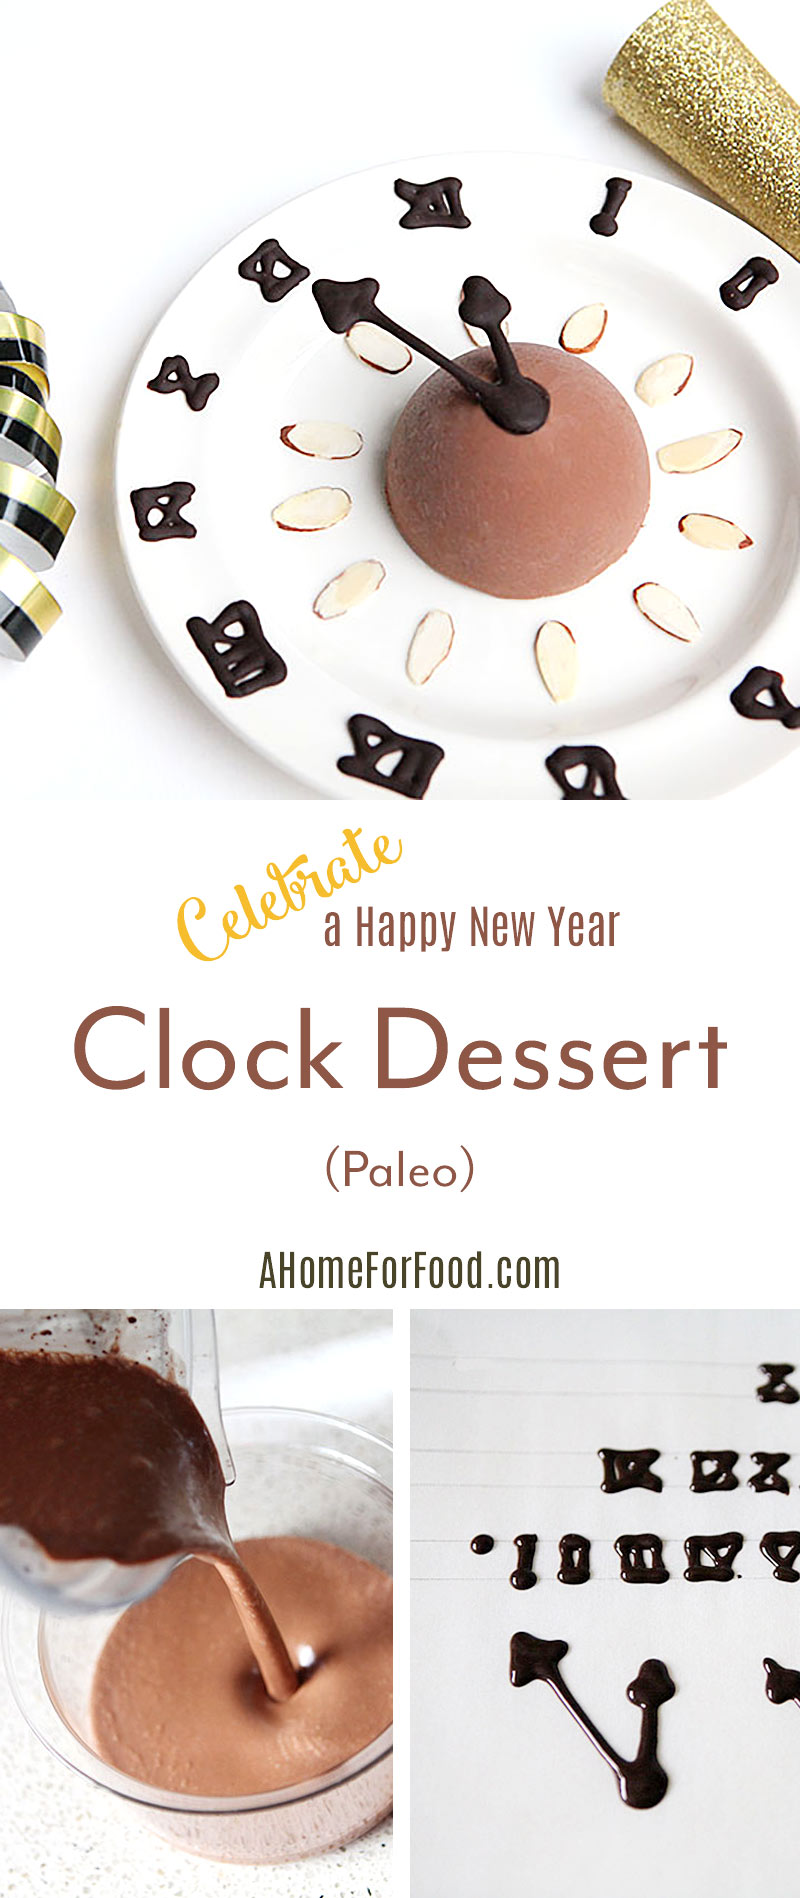 New Year clock desert: delicious and creamy chocolate ice cream (paleo)